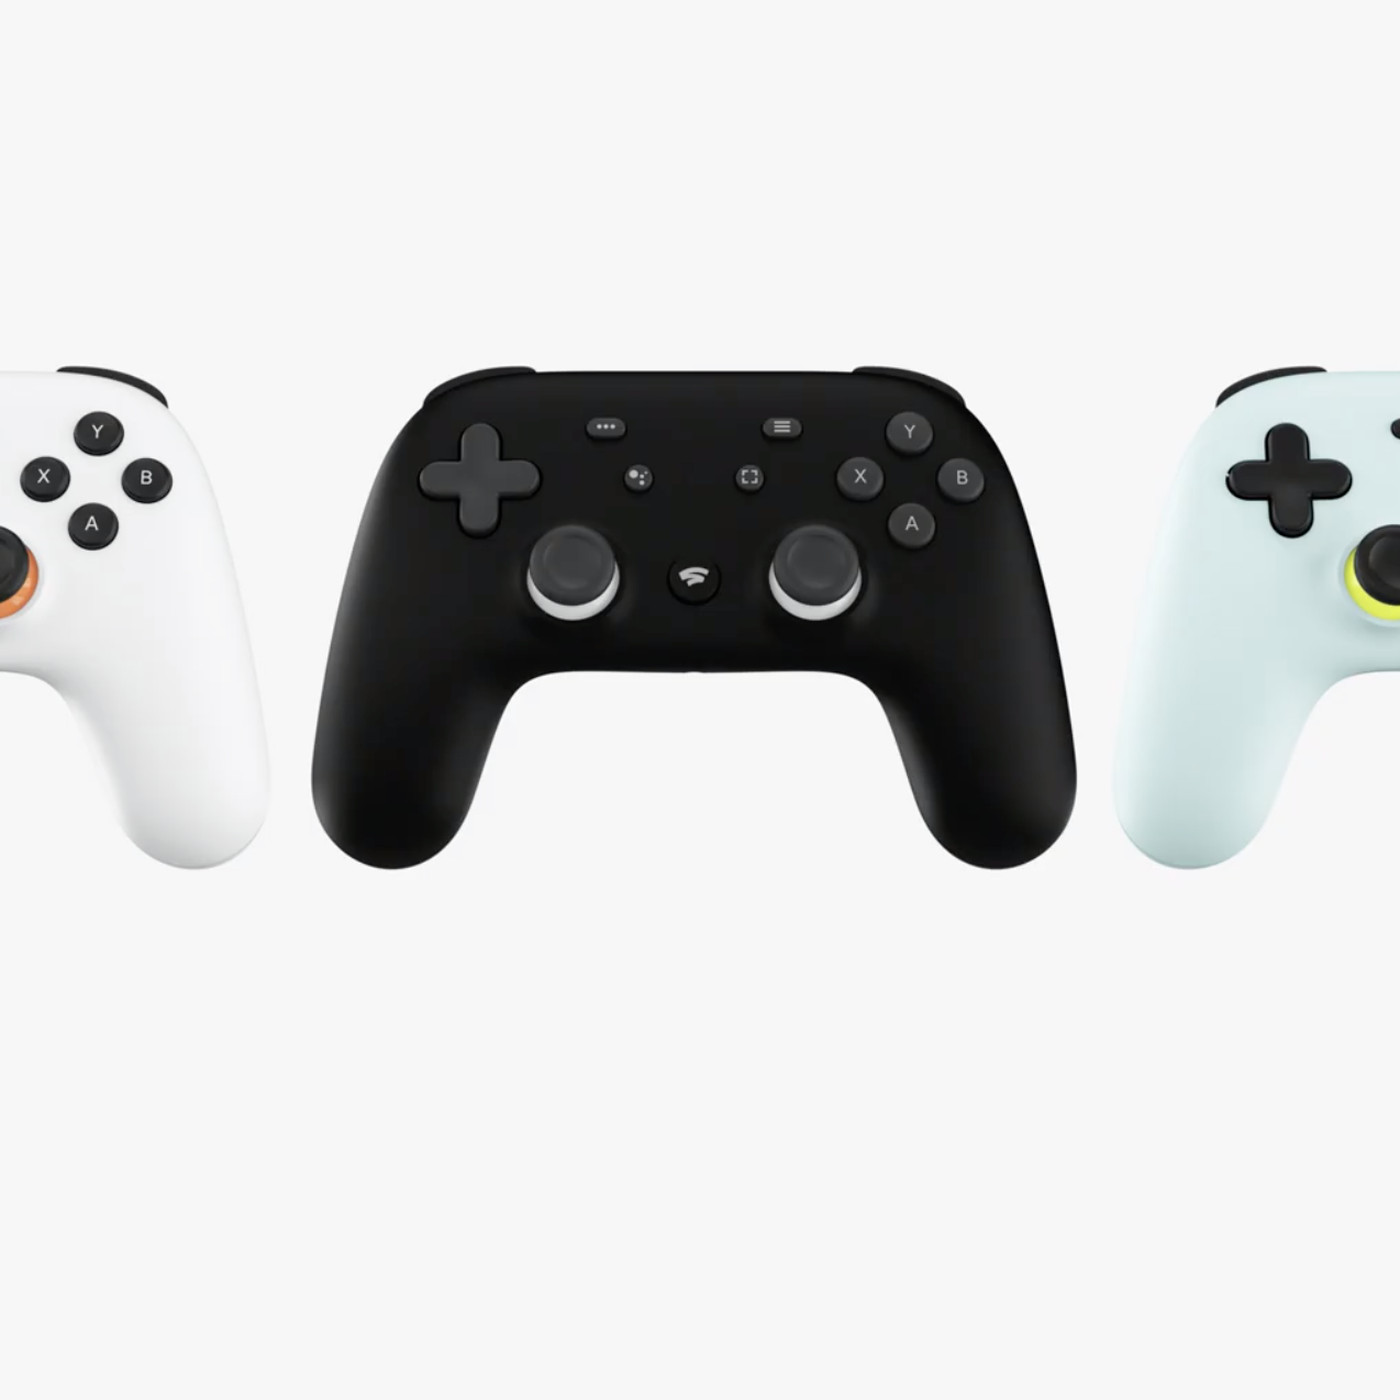 Here is Google's controller for its Stadia game-streaming service ...